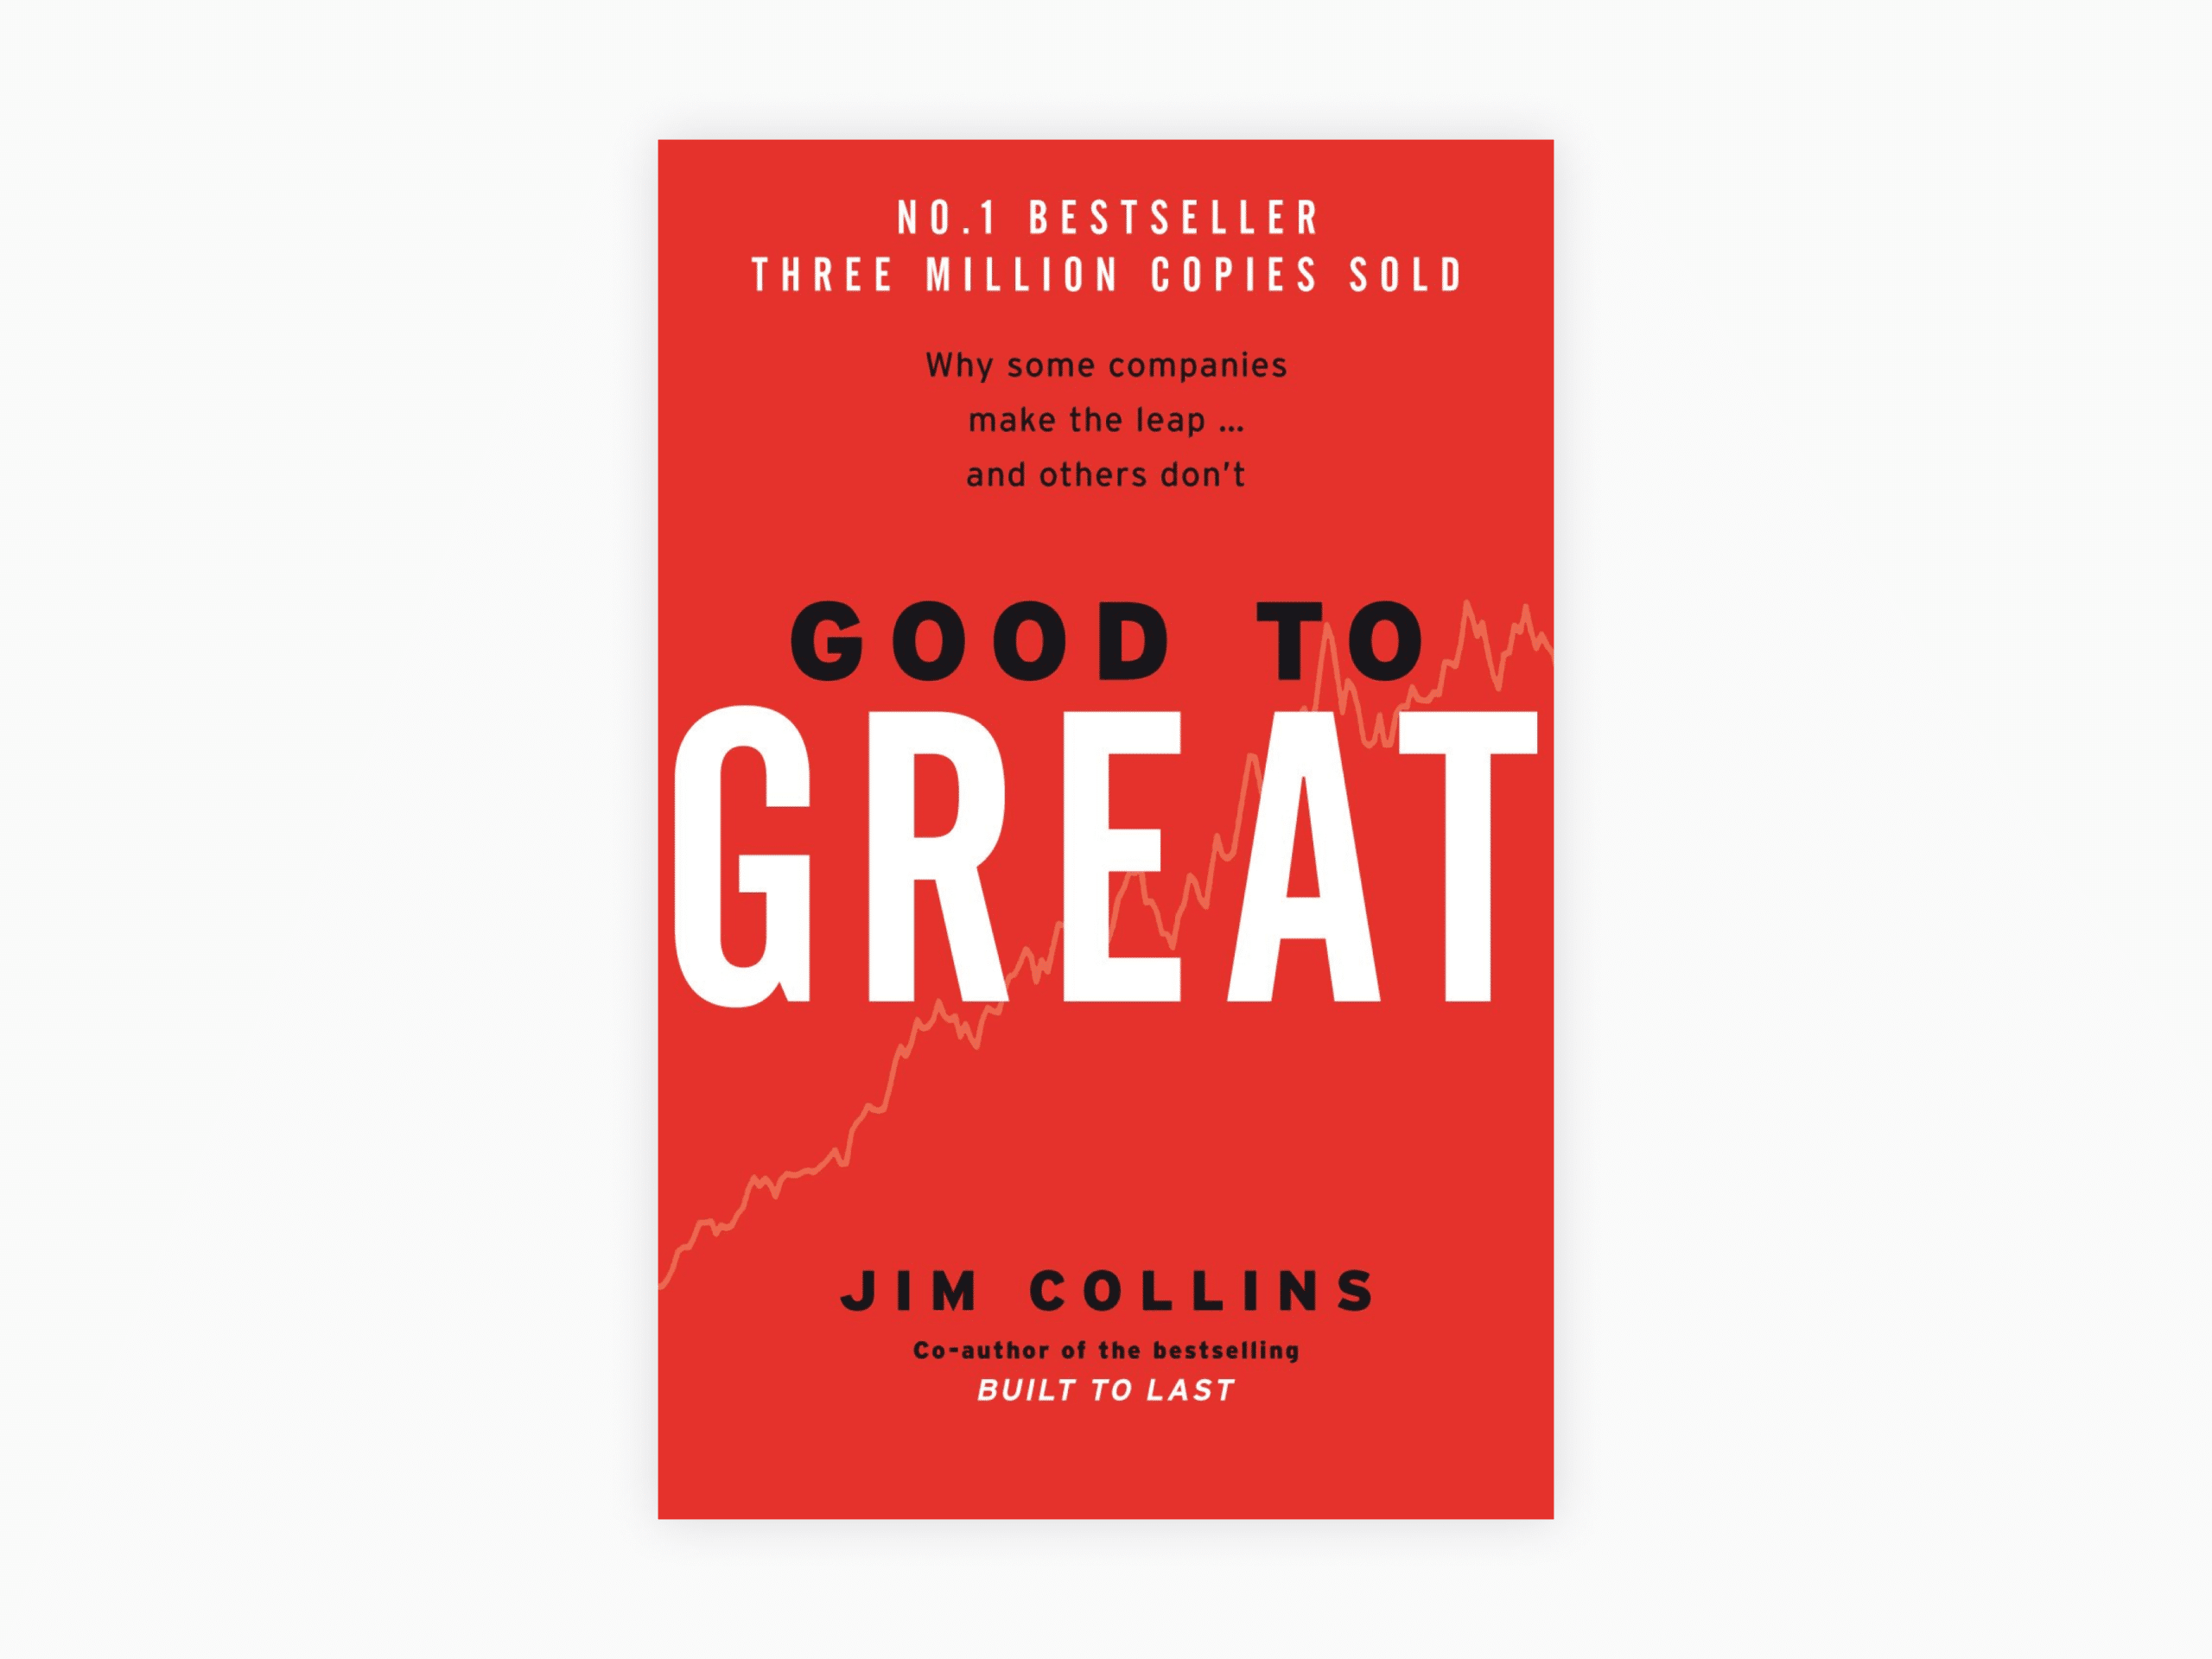 Book cover of good to great: why some companies make the leap and others don't by jim collins